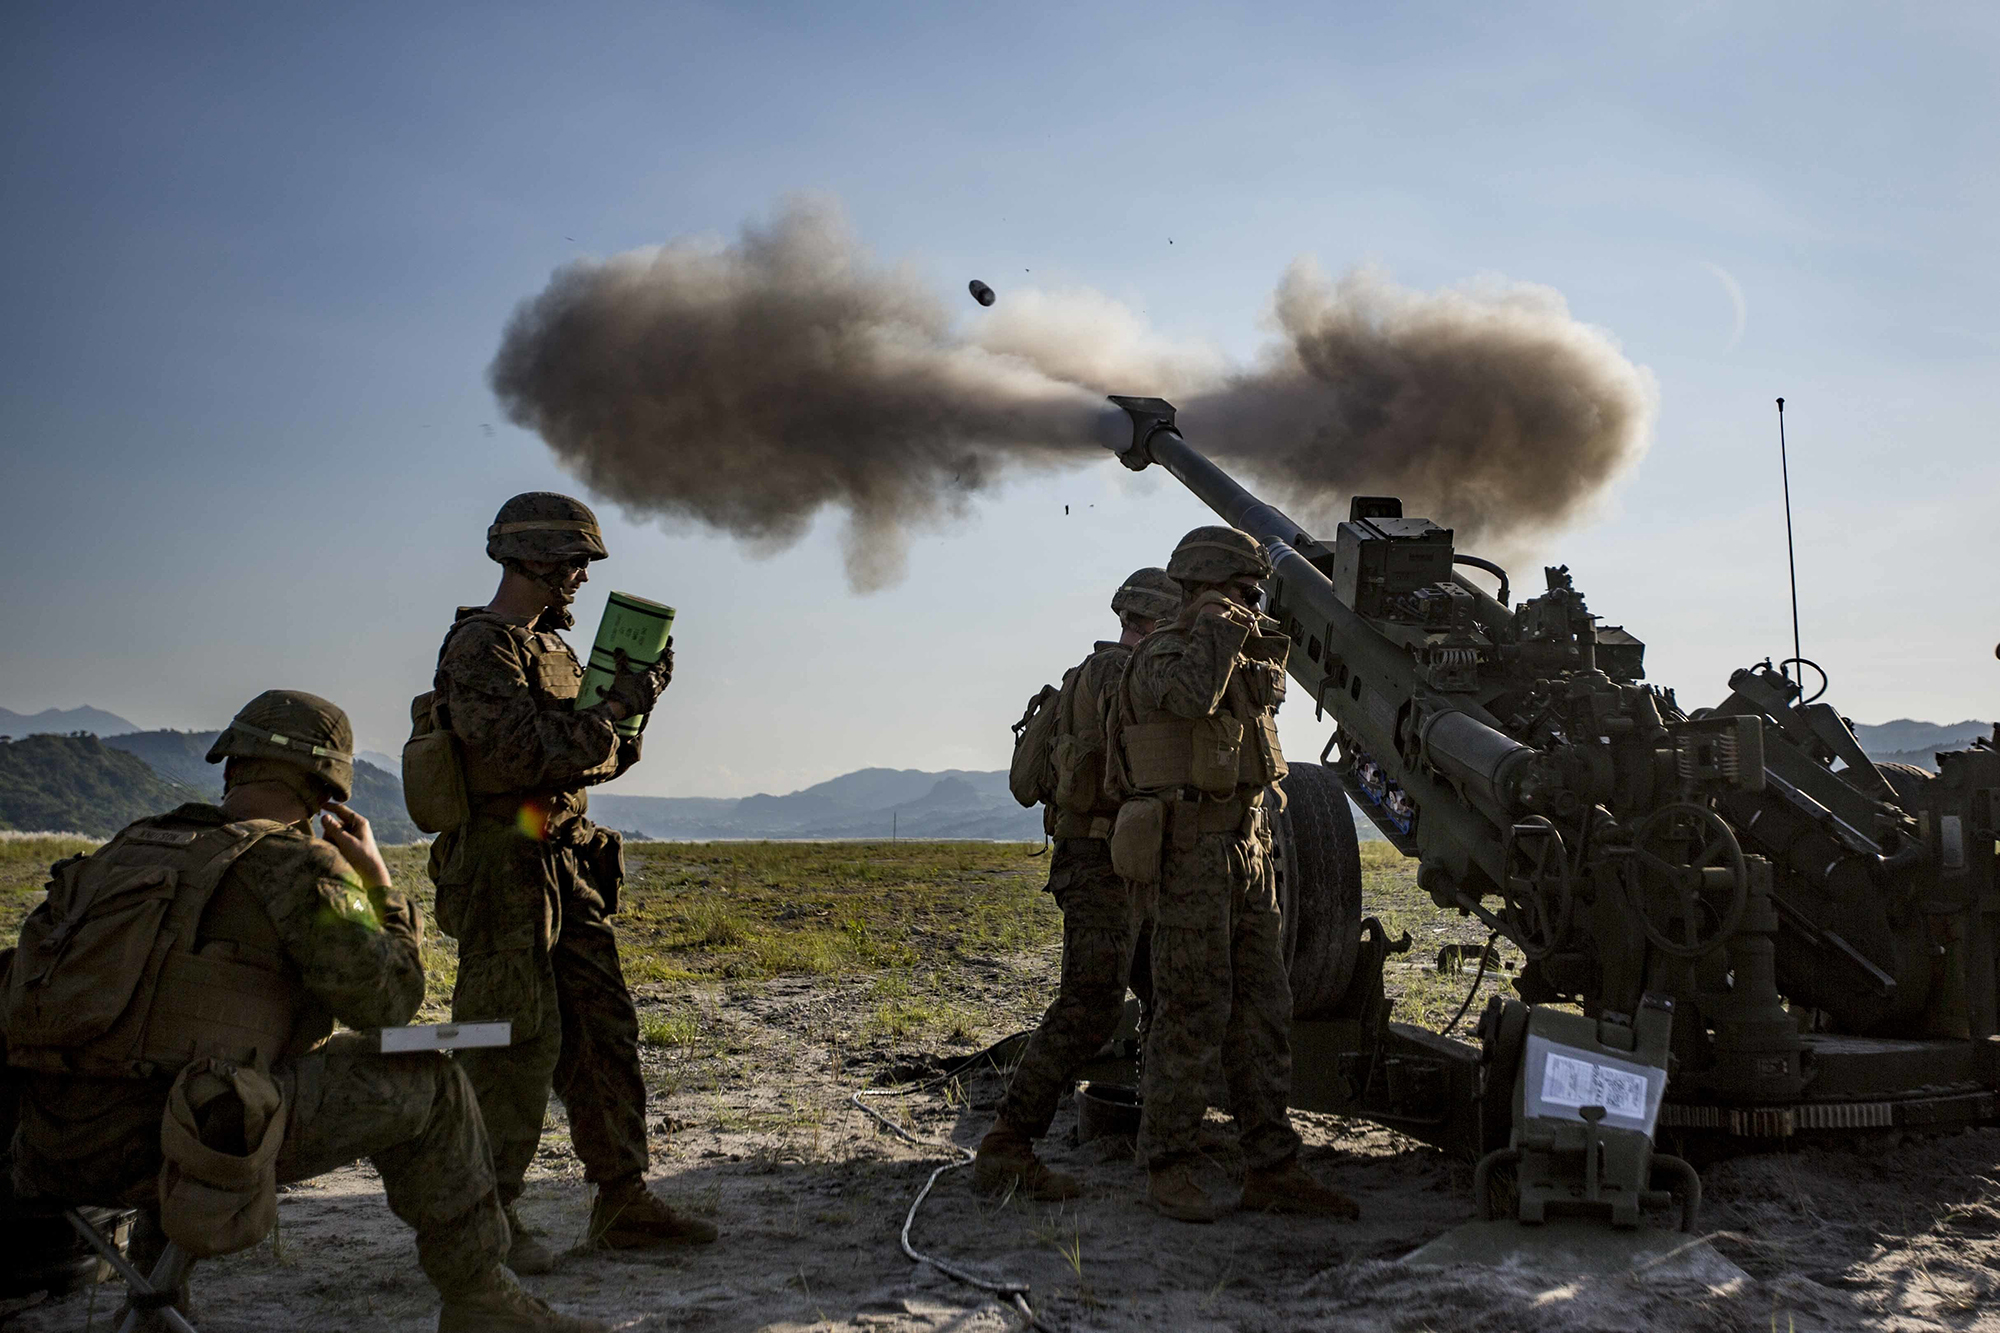 Marines fire an M777 Howitzer during exercise KAMANDAG 3 at Colonel Ernesto P. Ravina Air Base, Philippines, Oct. 13, 2019. (Lance Cpl. Christian Ayers/Marine Corps)